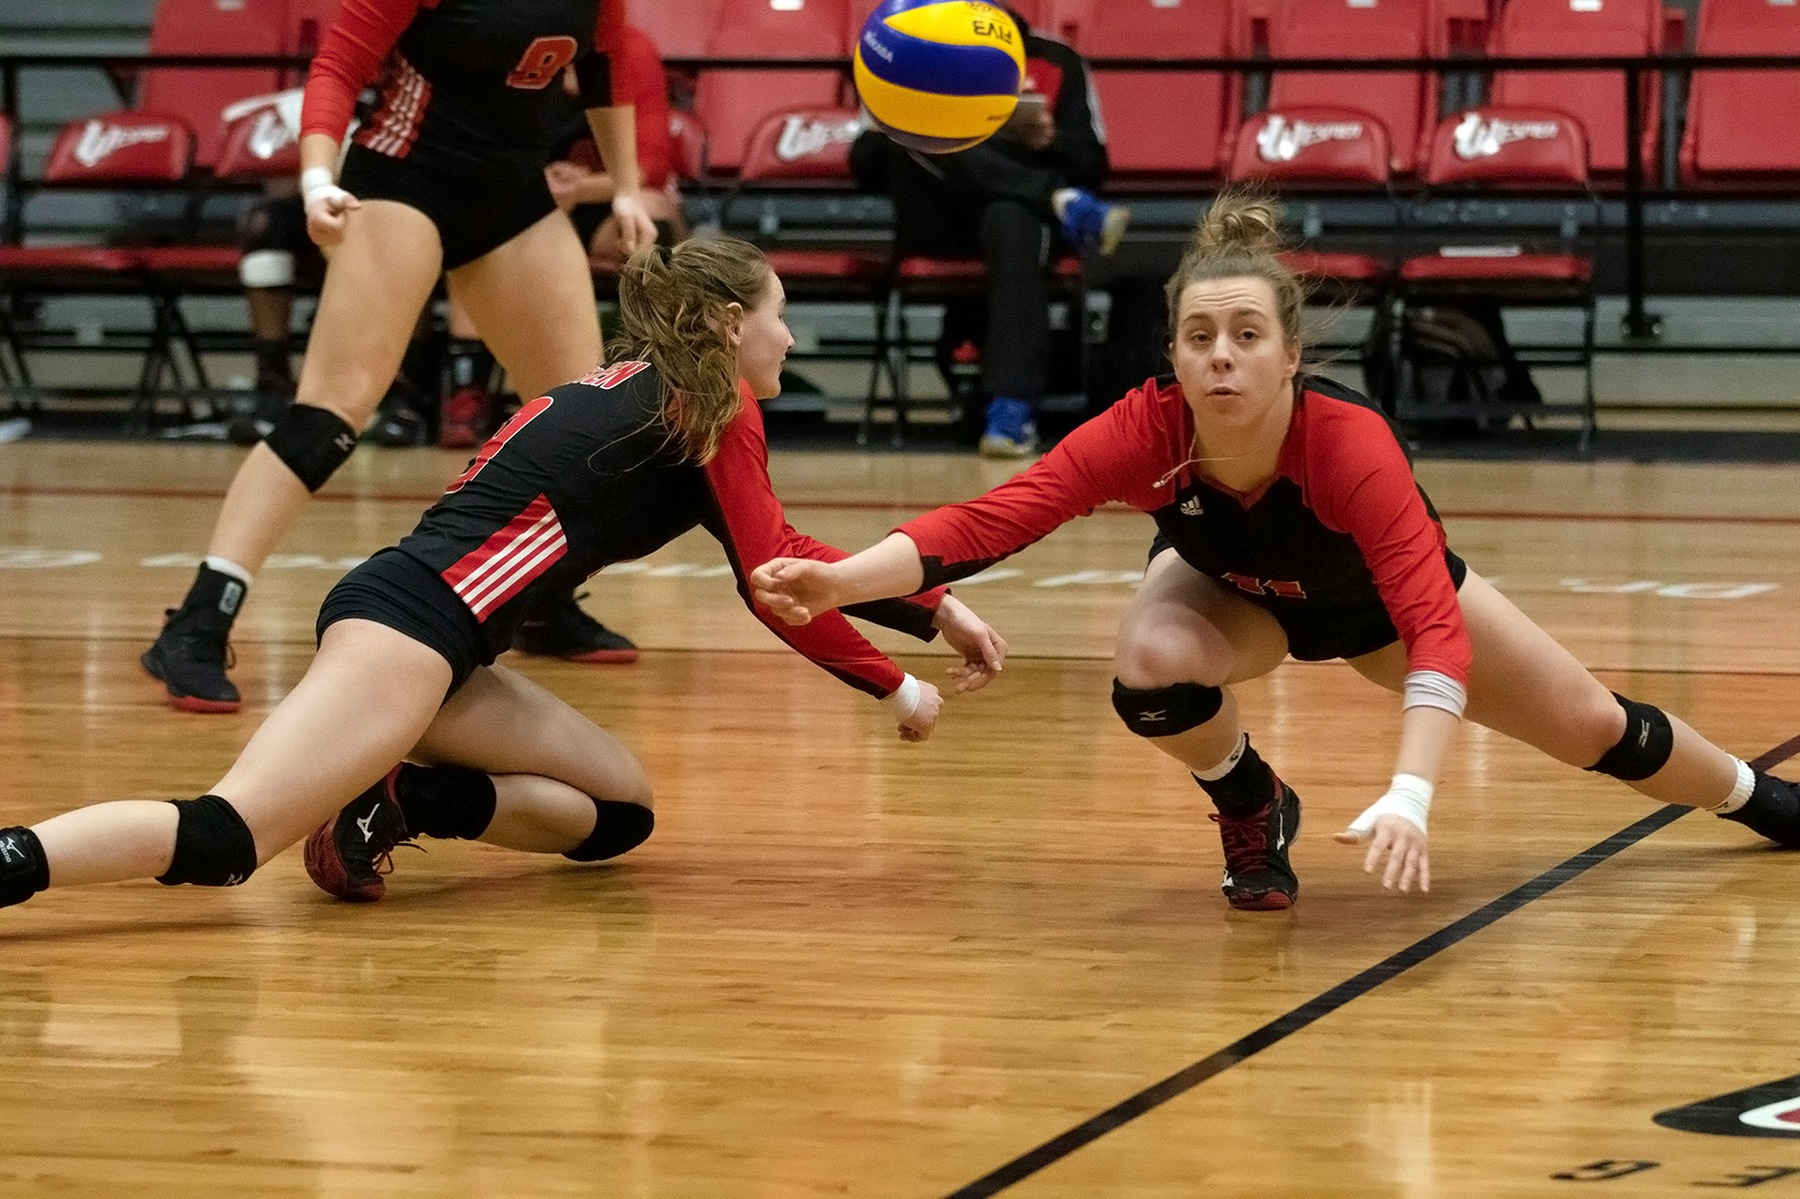 Wesmen Jess Friesen (right) and Emma Parker hit the floor looking to dig up a ball during Winnipeg's loss to the Alberta Pandas on Saturday, February 16, 2019. (David Larkins/Wesmen Athletics)